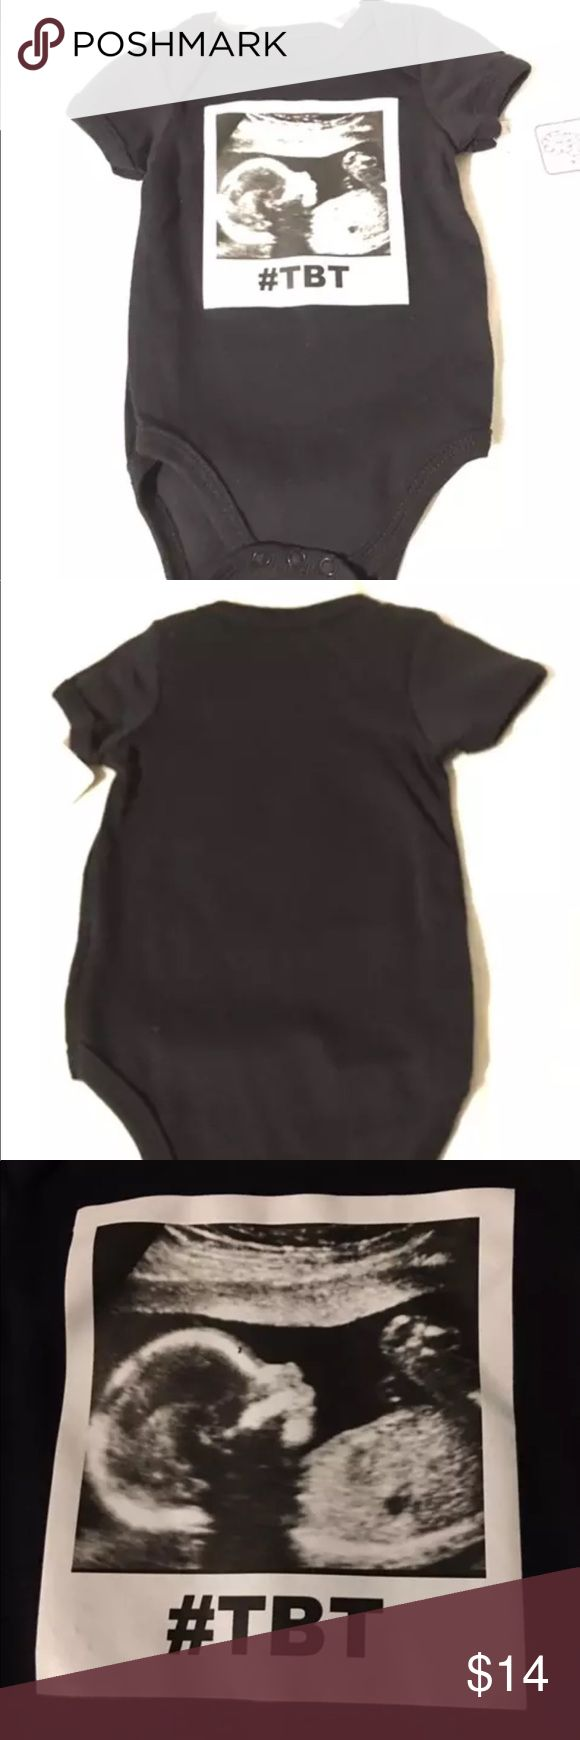 1 piece #TBT Throw Back Ultrasound pic outfit 👶 This one really looks like a genuine sonogram photo. Really cool! We have 2 in 6-9 months and 1 3-6 months. Please specify size and email to ensure your size is available prior to buying swiggles Other